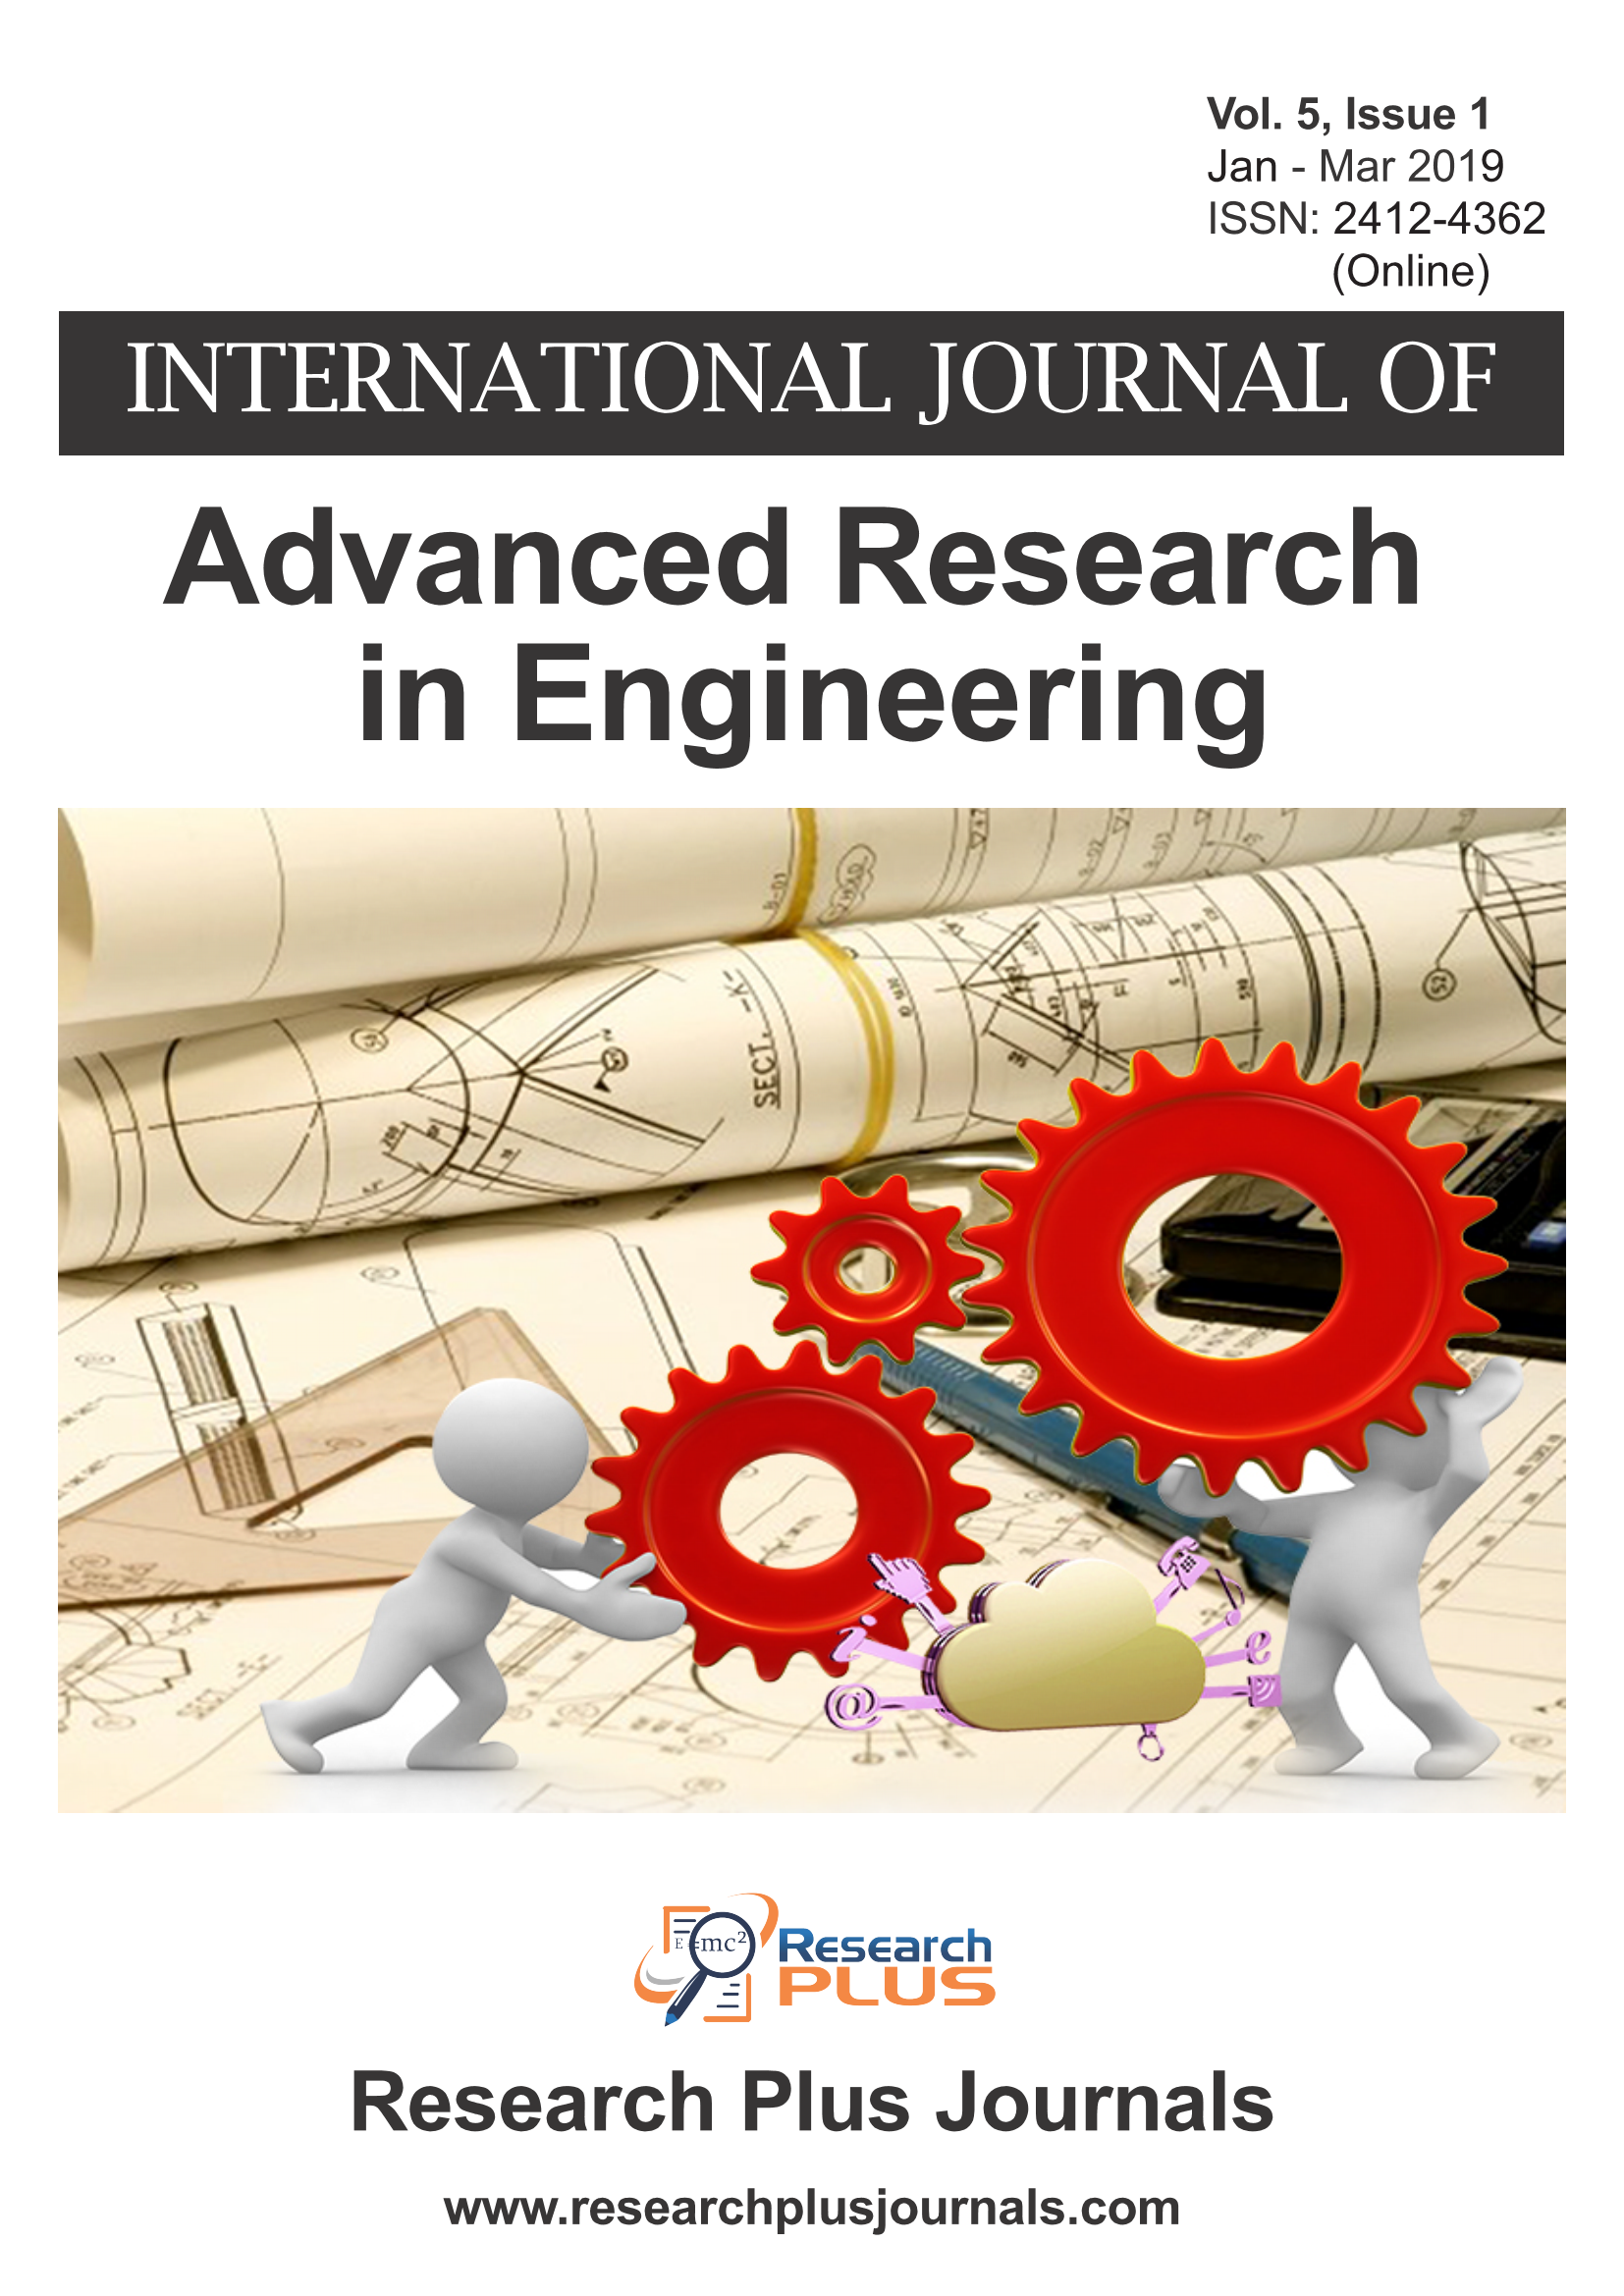 Volume 5, Issue 1, International Journal of Advanced Research in Engineering (IJARE)  (Online ISSN 2412-4362)